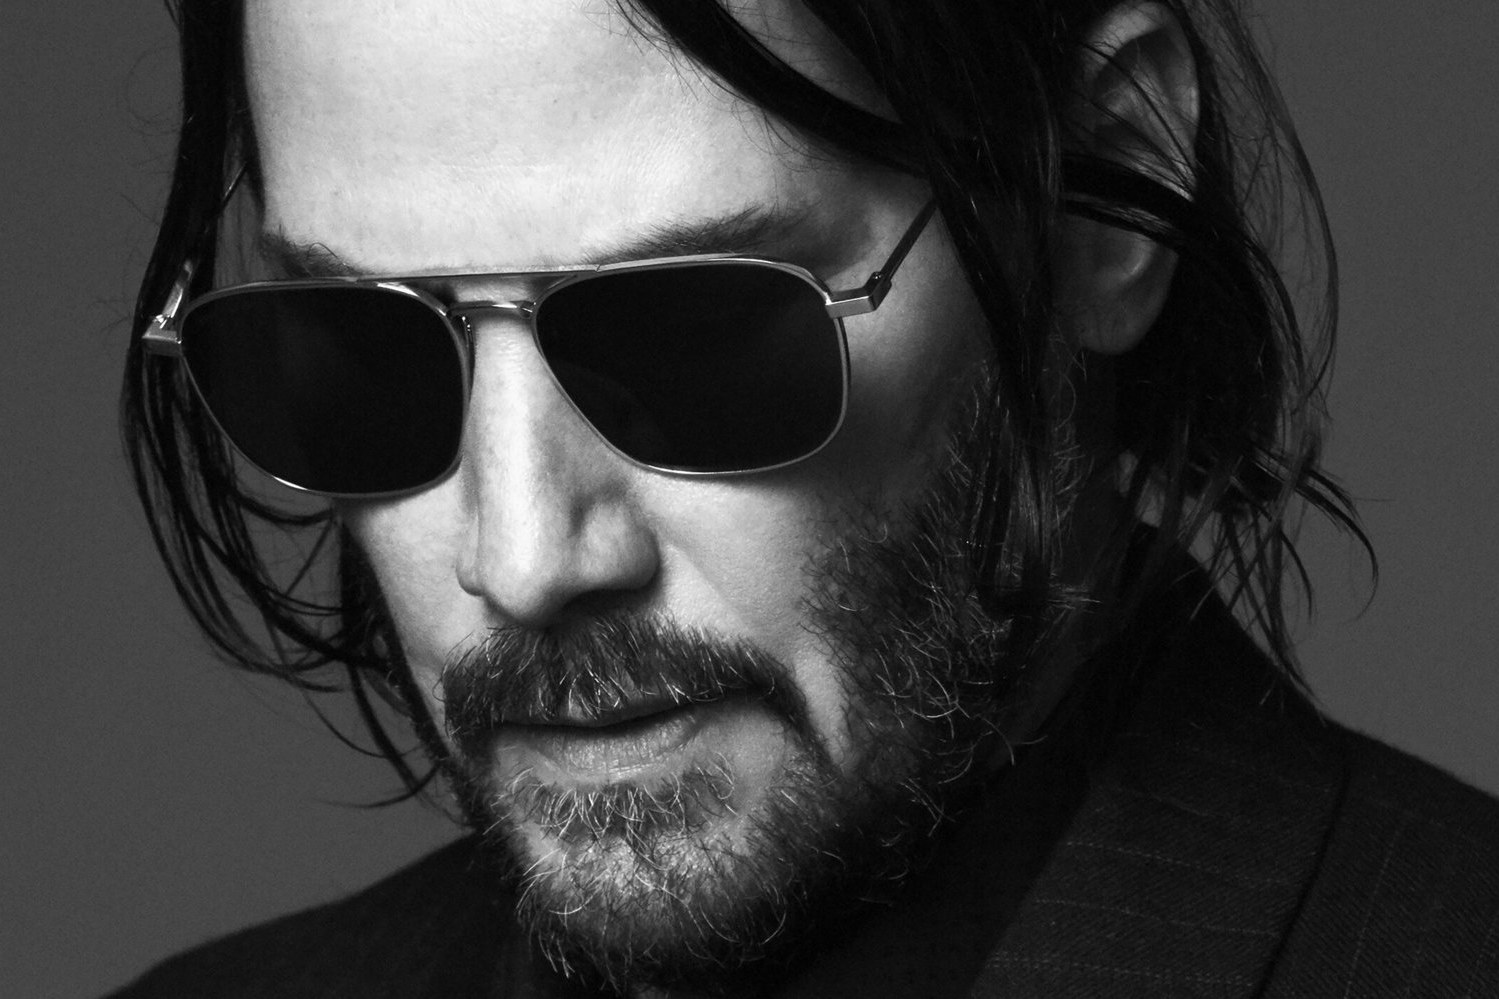 keanu-reeves-by-mohit-bansal-chandigarh